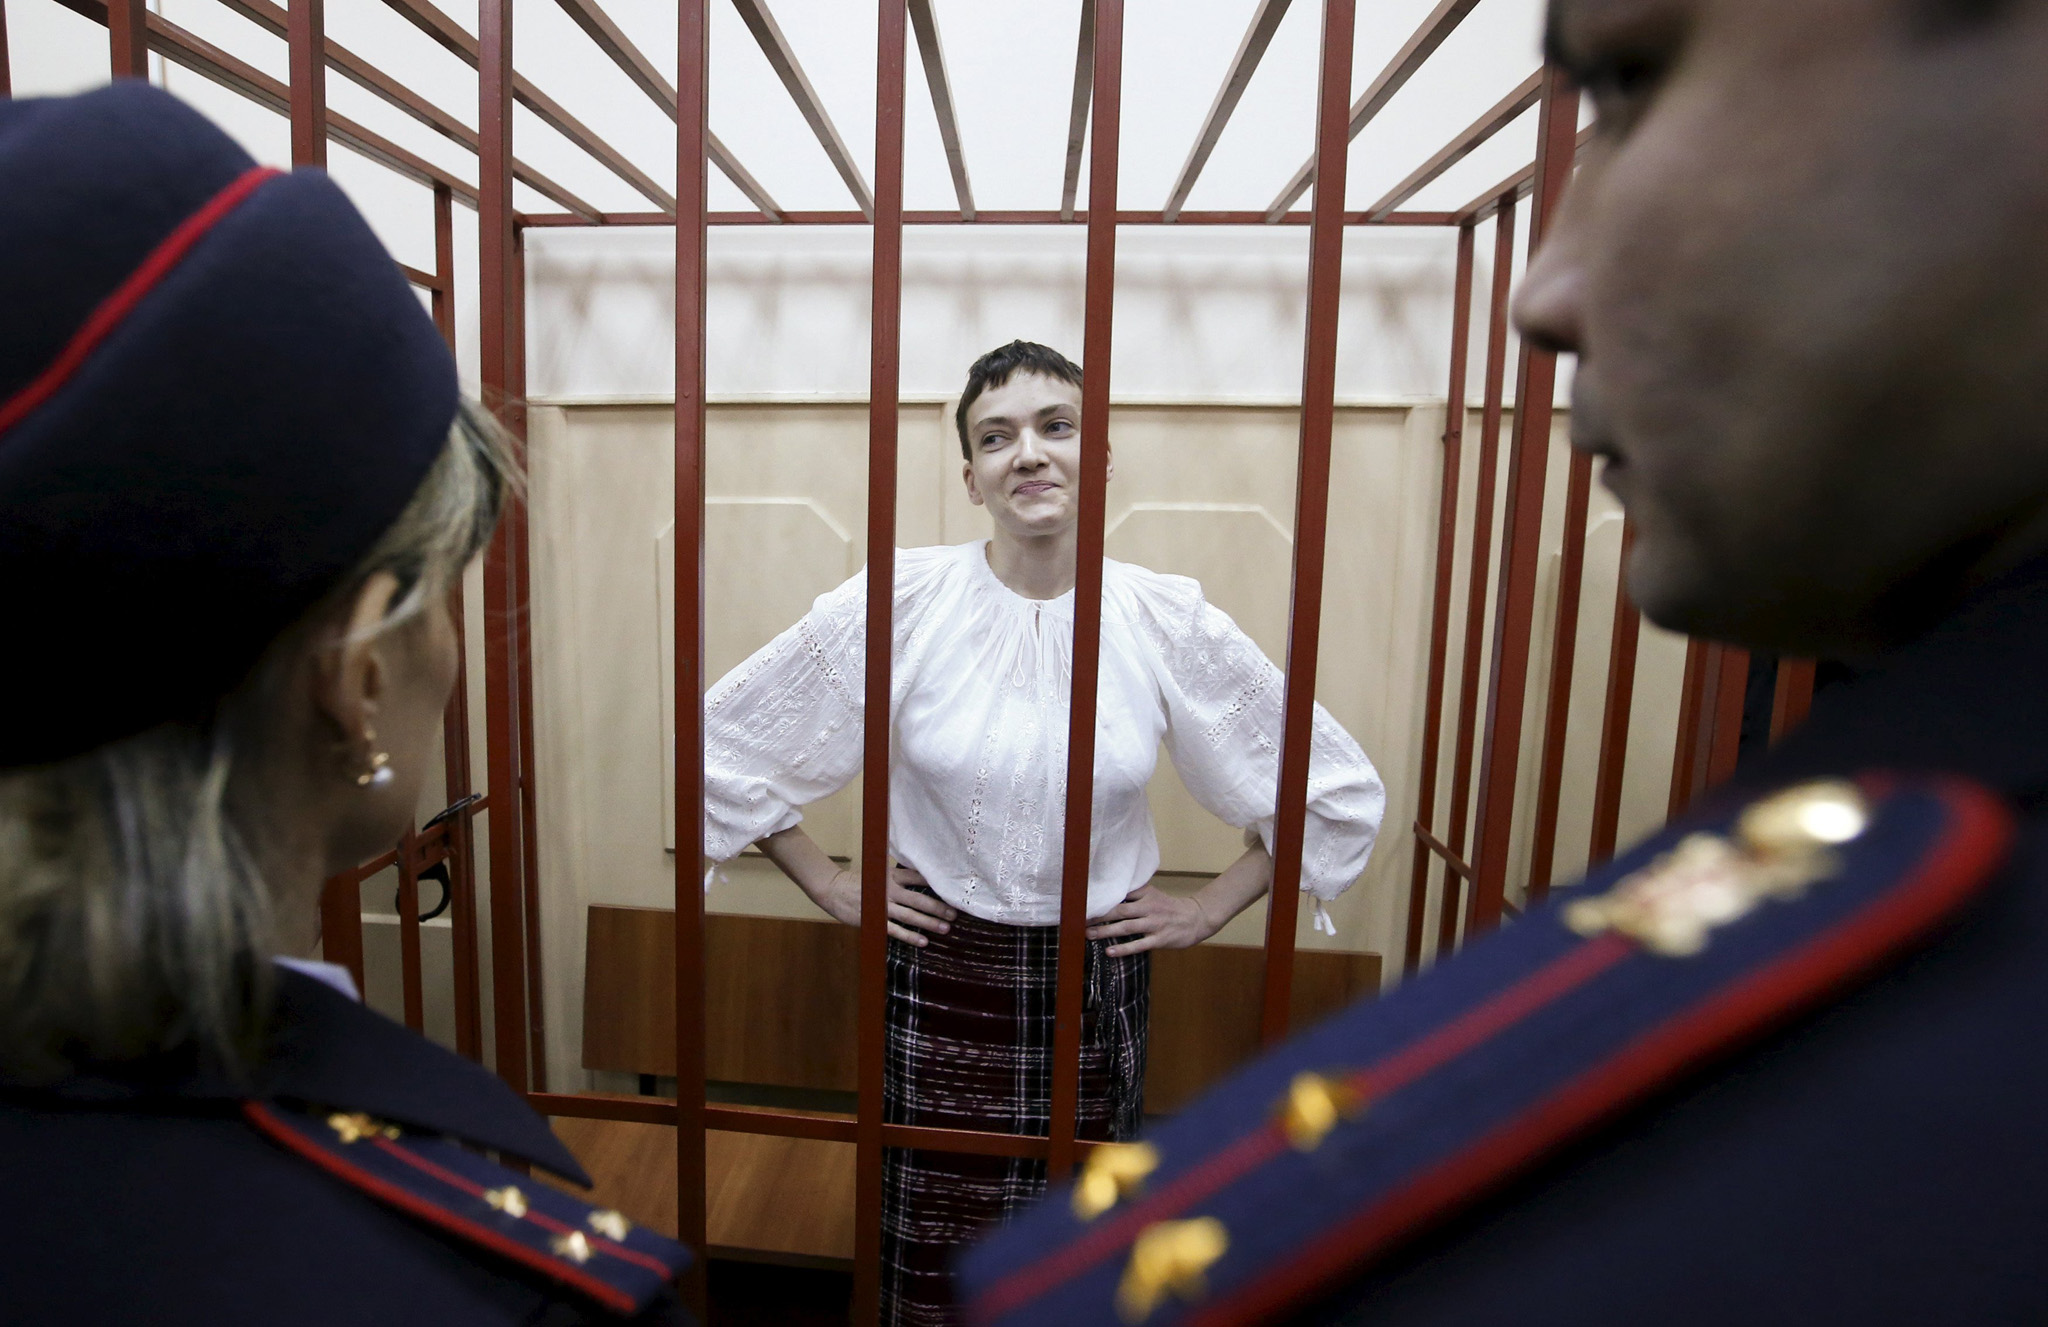 Ukrainian military pilot Nadezhda Savchenko stands inside a defendants' cage as she attends a court hearing in Moscow April 17, 2015. Pro-Russian separatists battling Kiev's forces captured Savchenko last June and handed her over to Moscow, where she is being held on charges of aiding the killing of two Russian journalists in eastern Ukraine